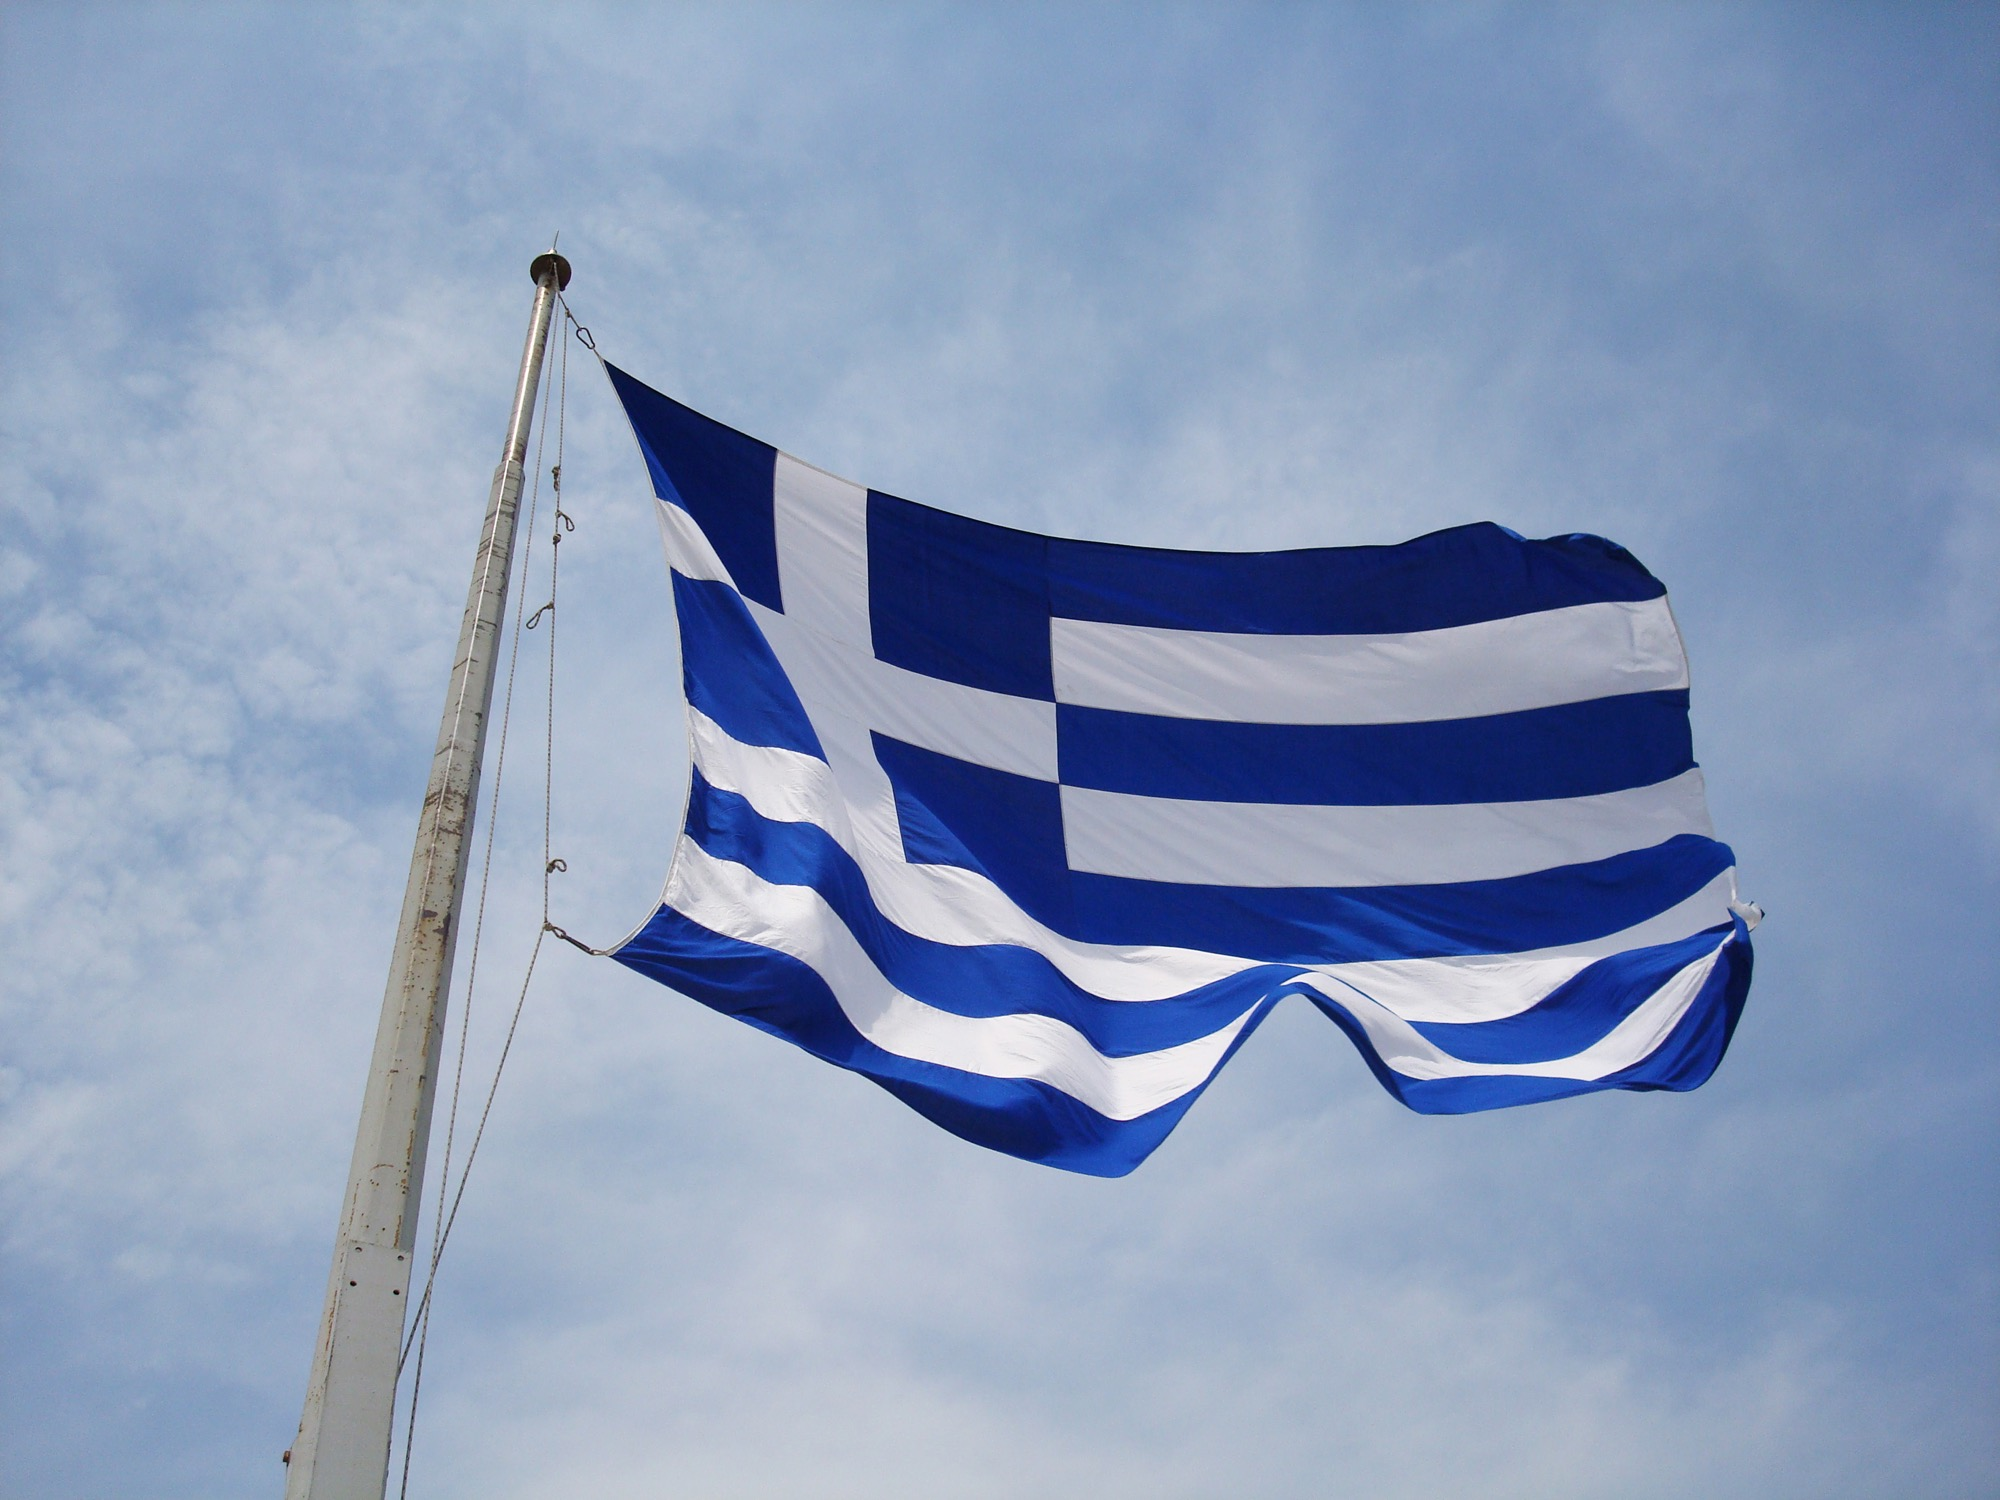 A few things to bear in mind before commenting on Greece and the Eurozone